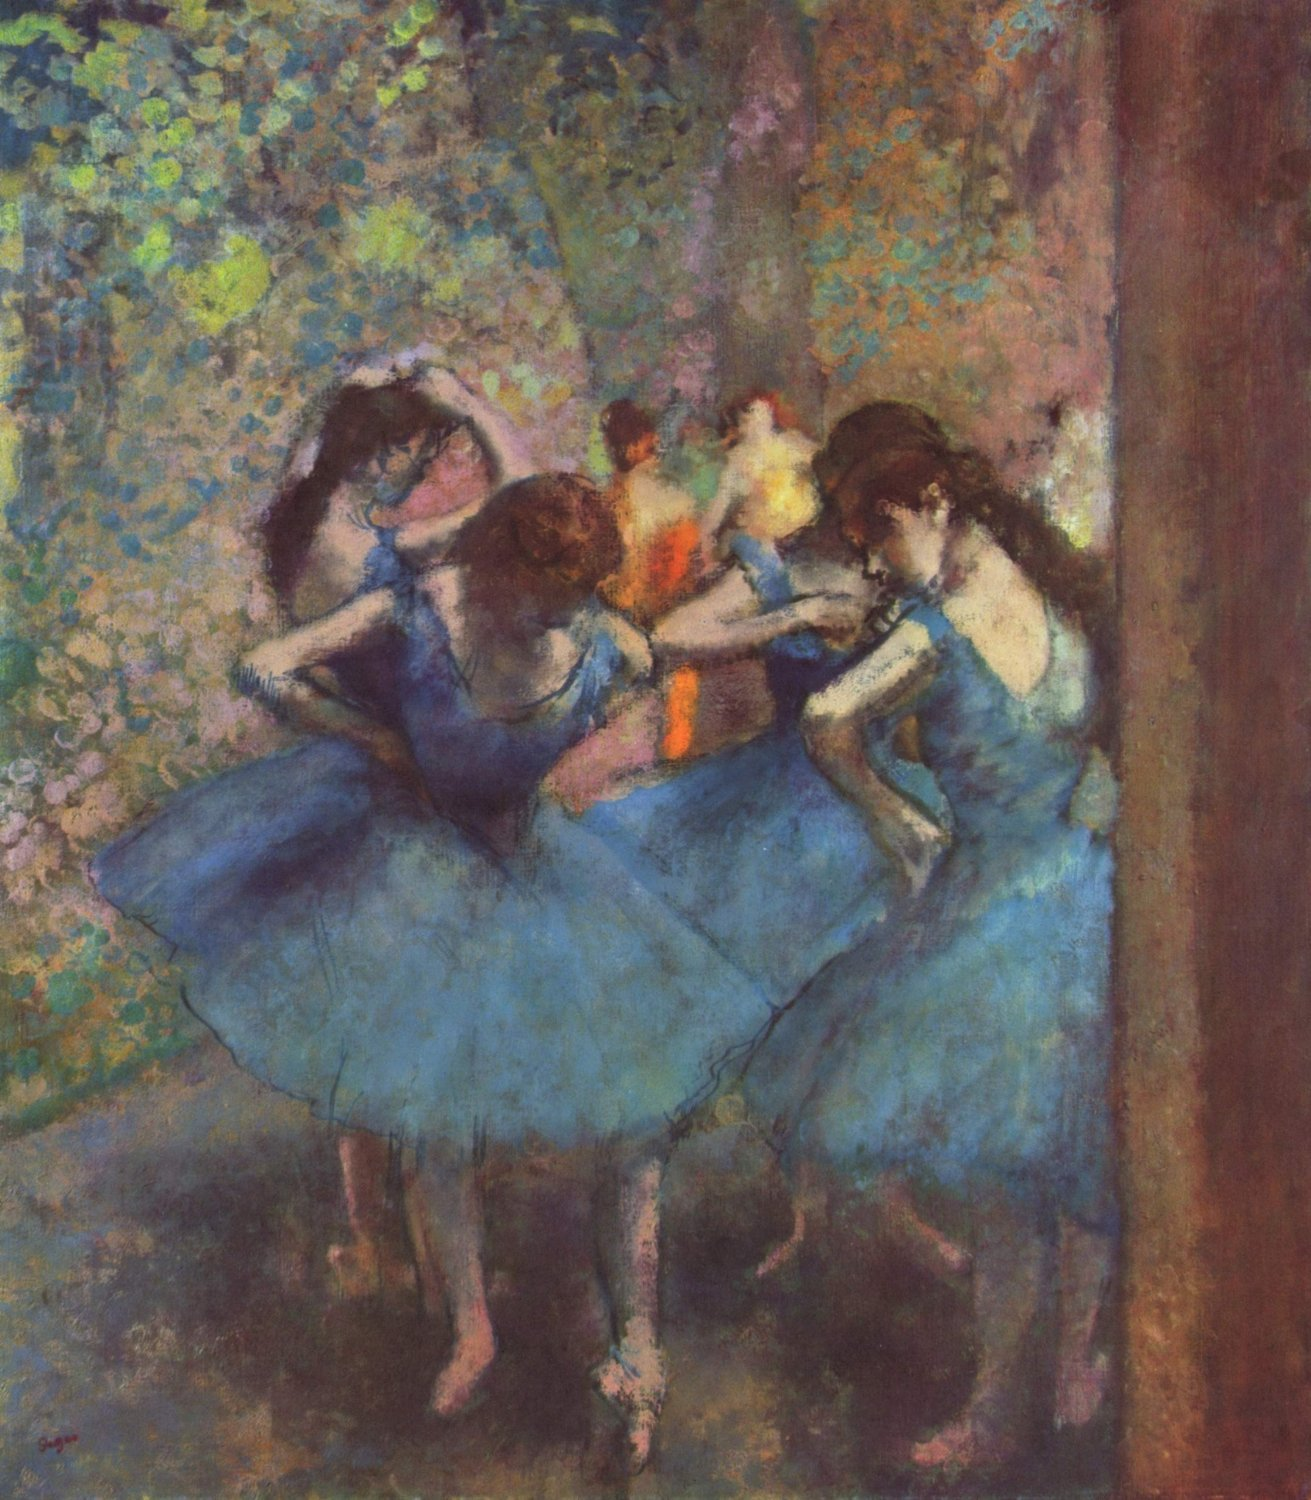 Trefl Jigsaw Puzzle 1000 Pieces by Hilaire Germain Edgar Degas of his Dancers in Blue painting dancers-in-blue